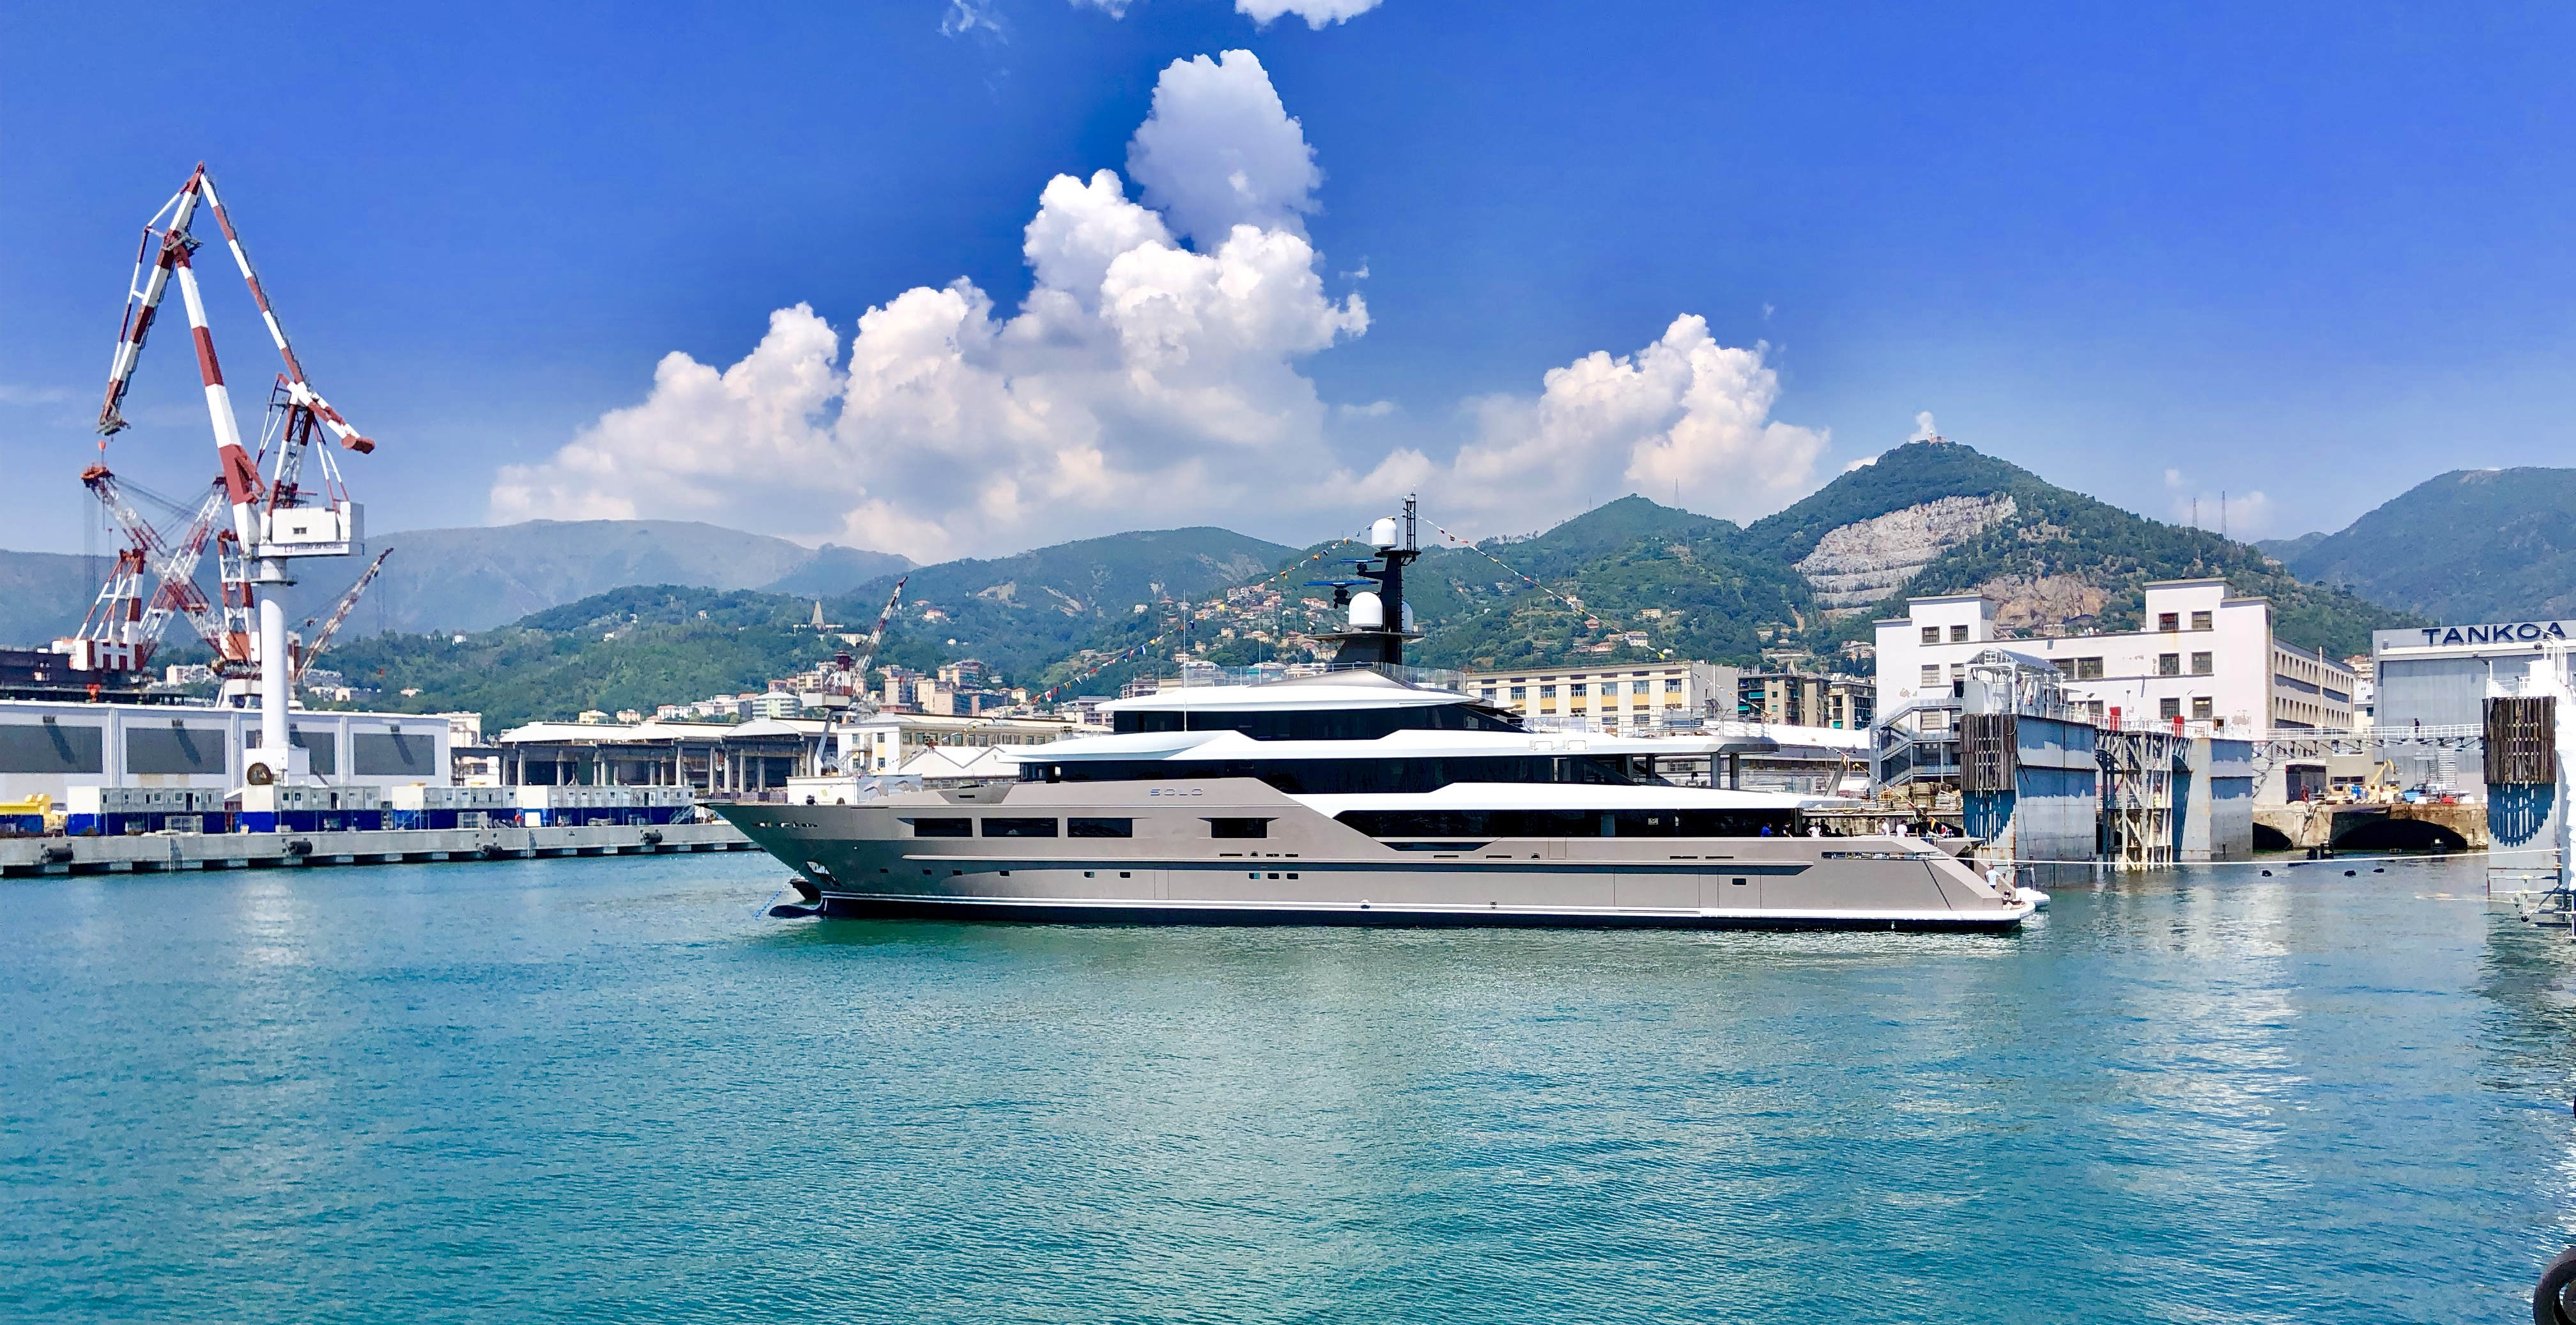 72 Metre S701 Solo Launched By Tankoa Yachts Yacht Harbour